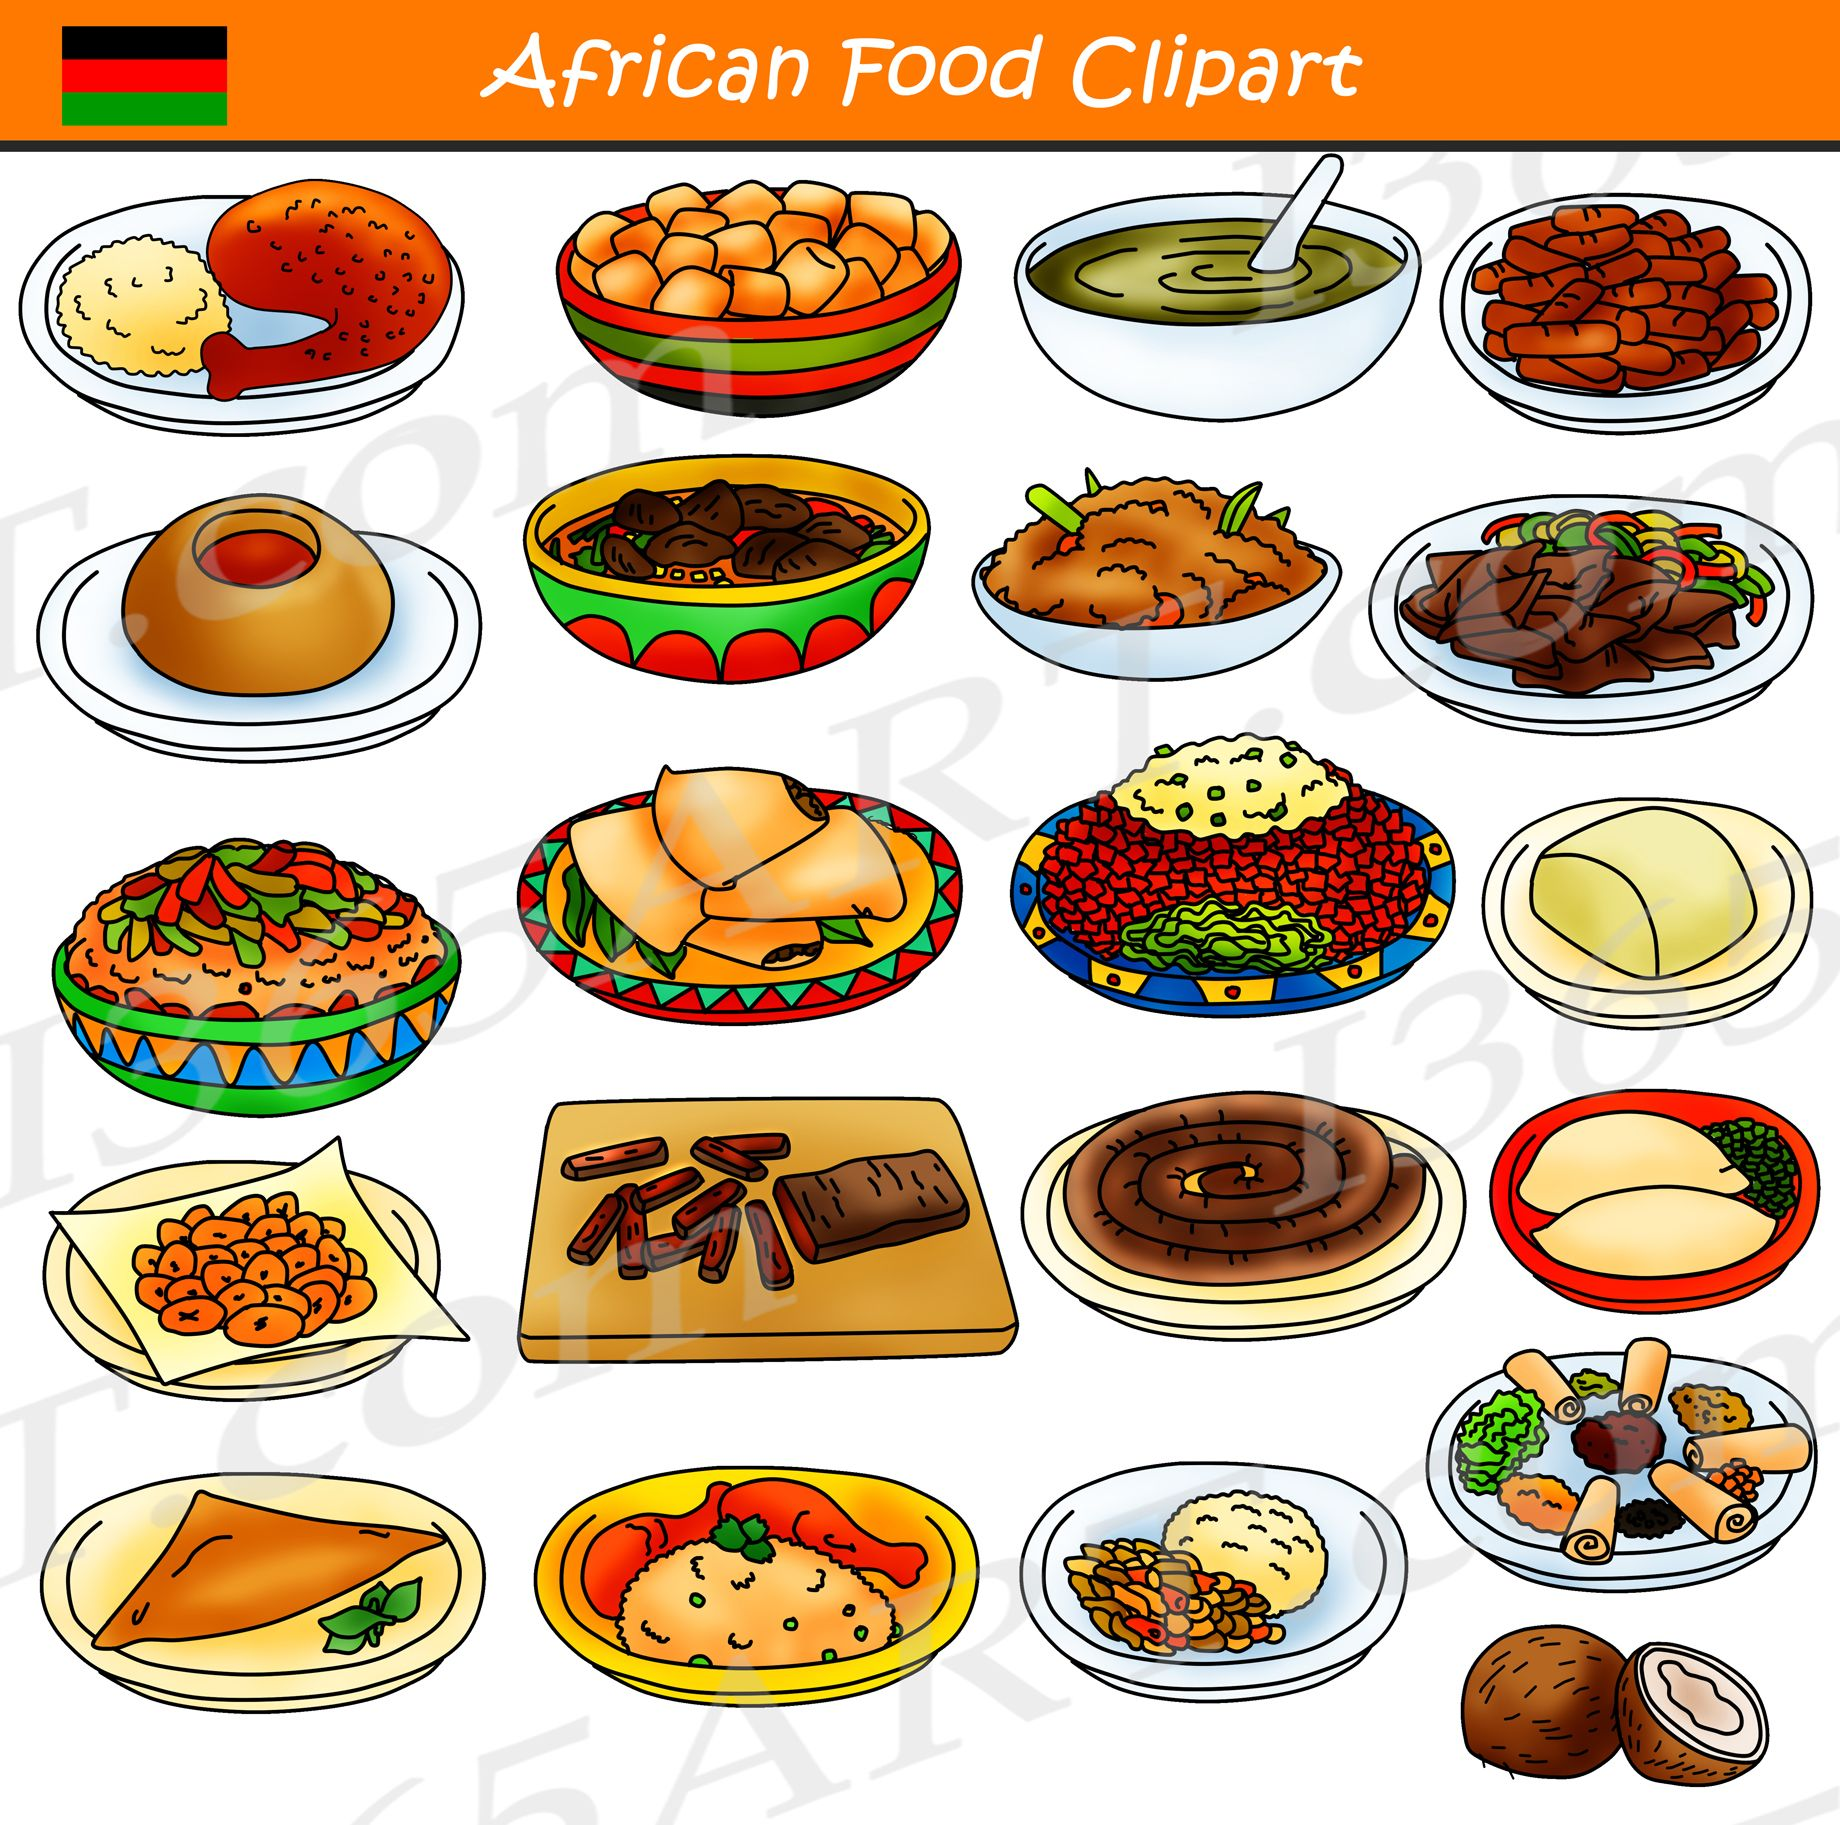 African Food Clipart Commercial Download.